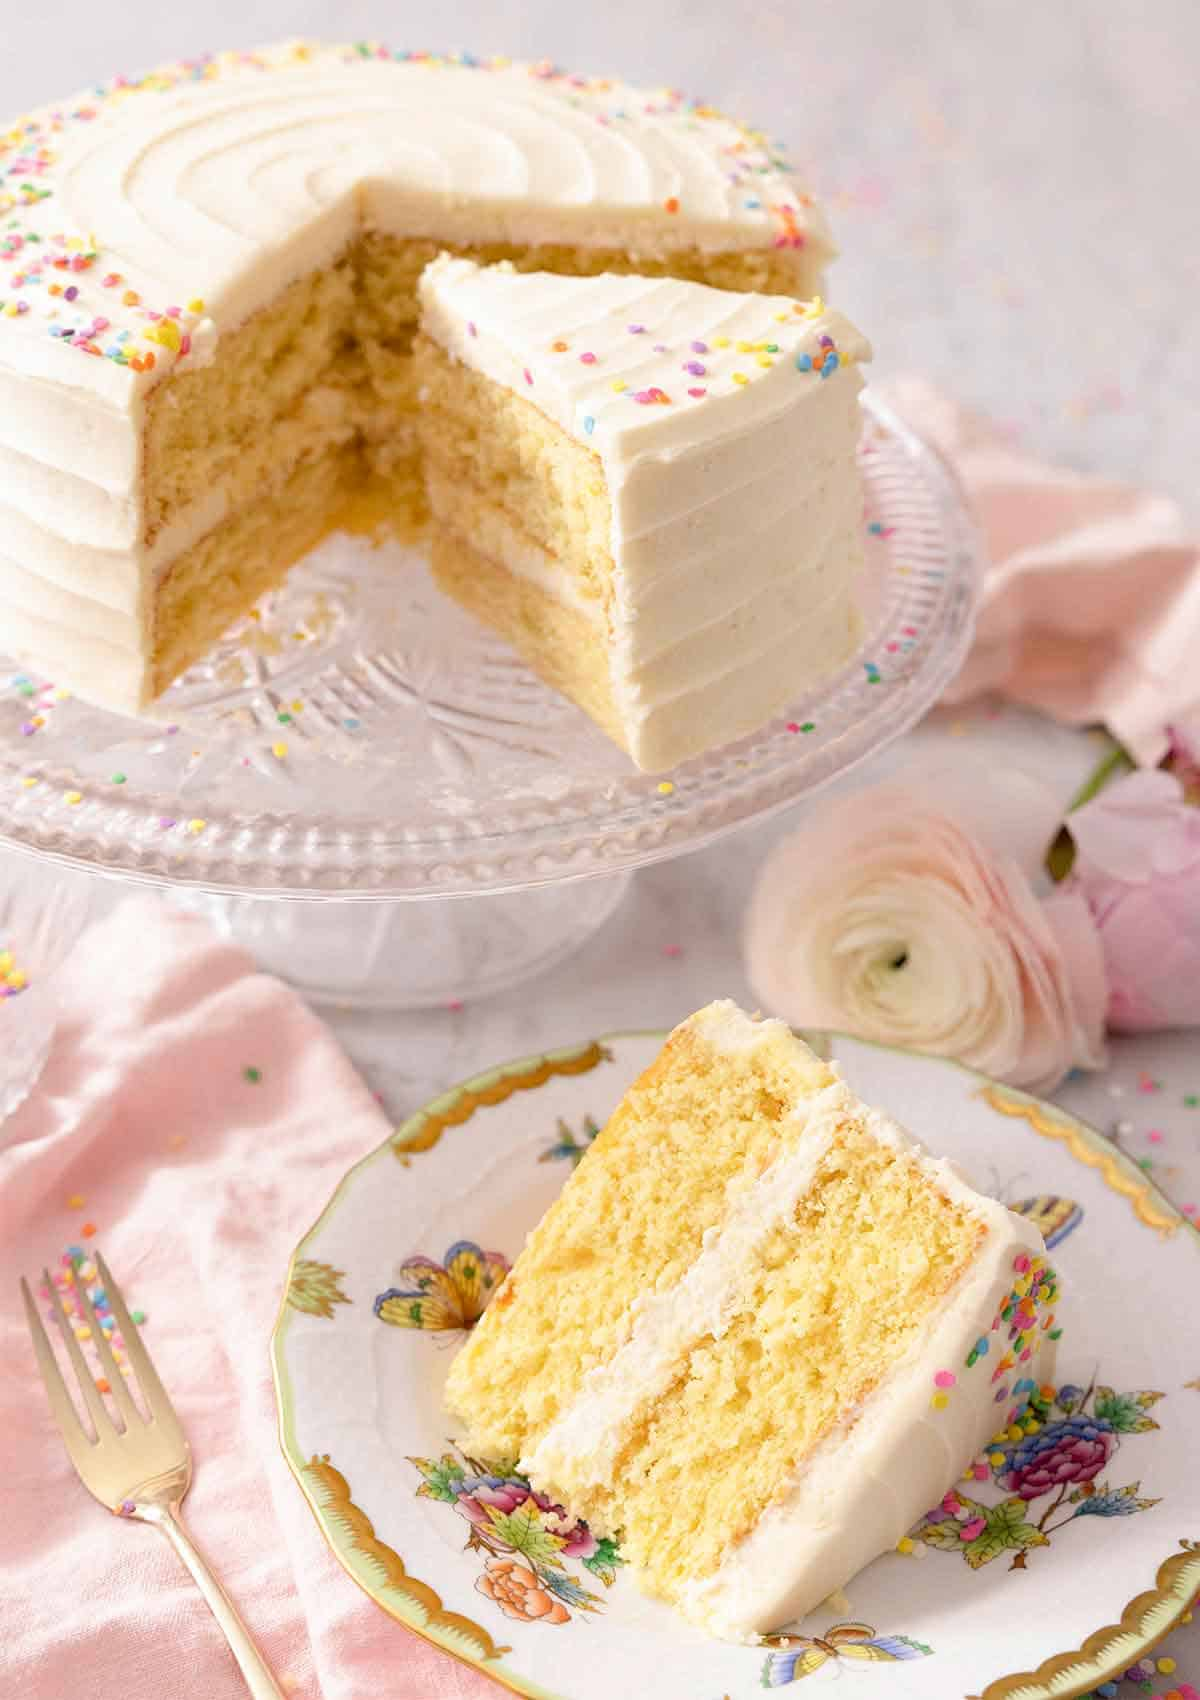 A slice of vanilla cake on a plate in front of the cake on a cake stand.